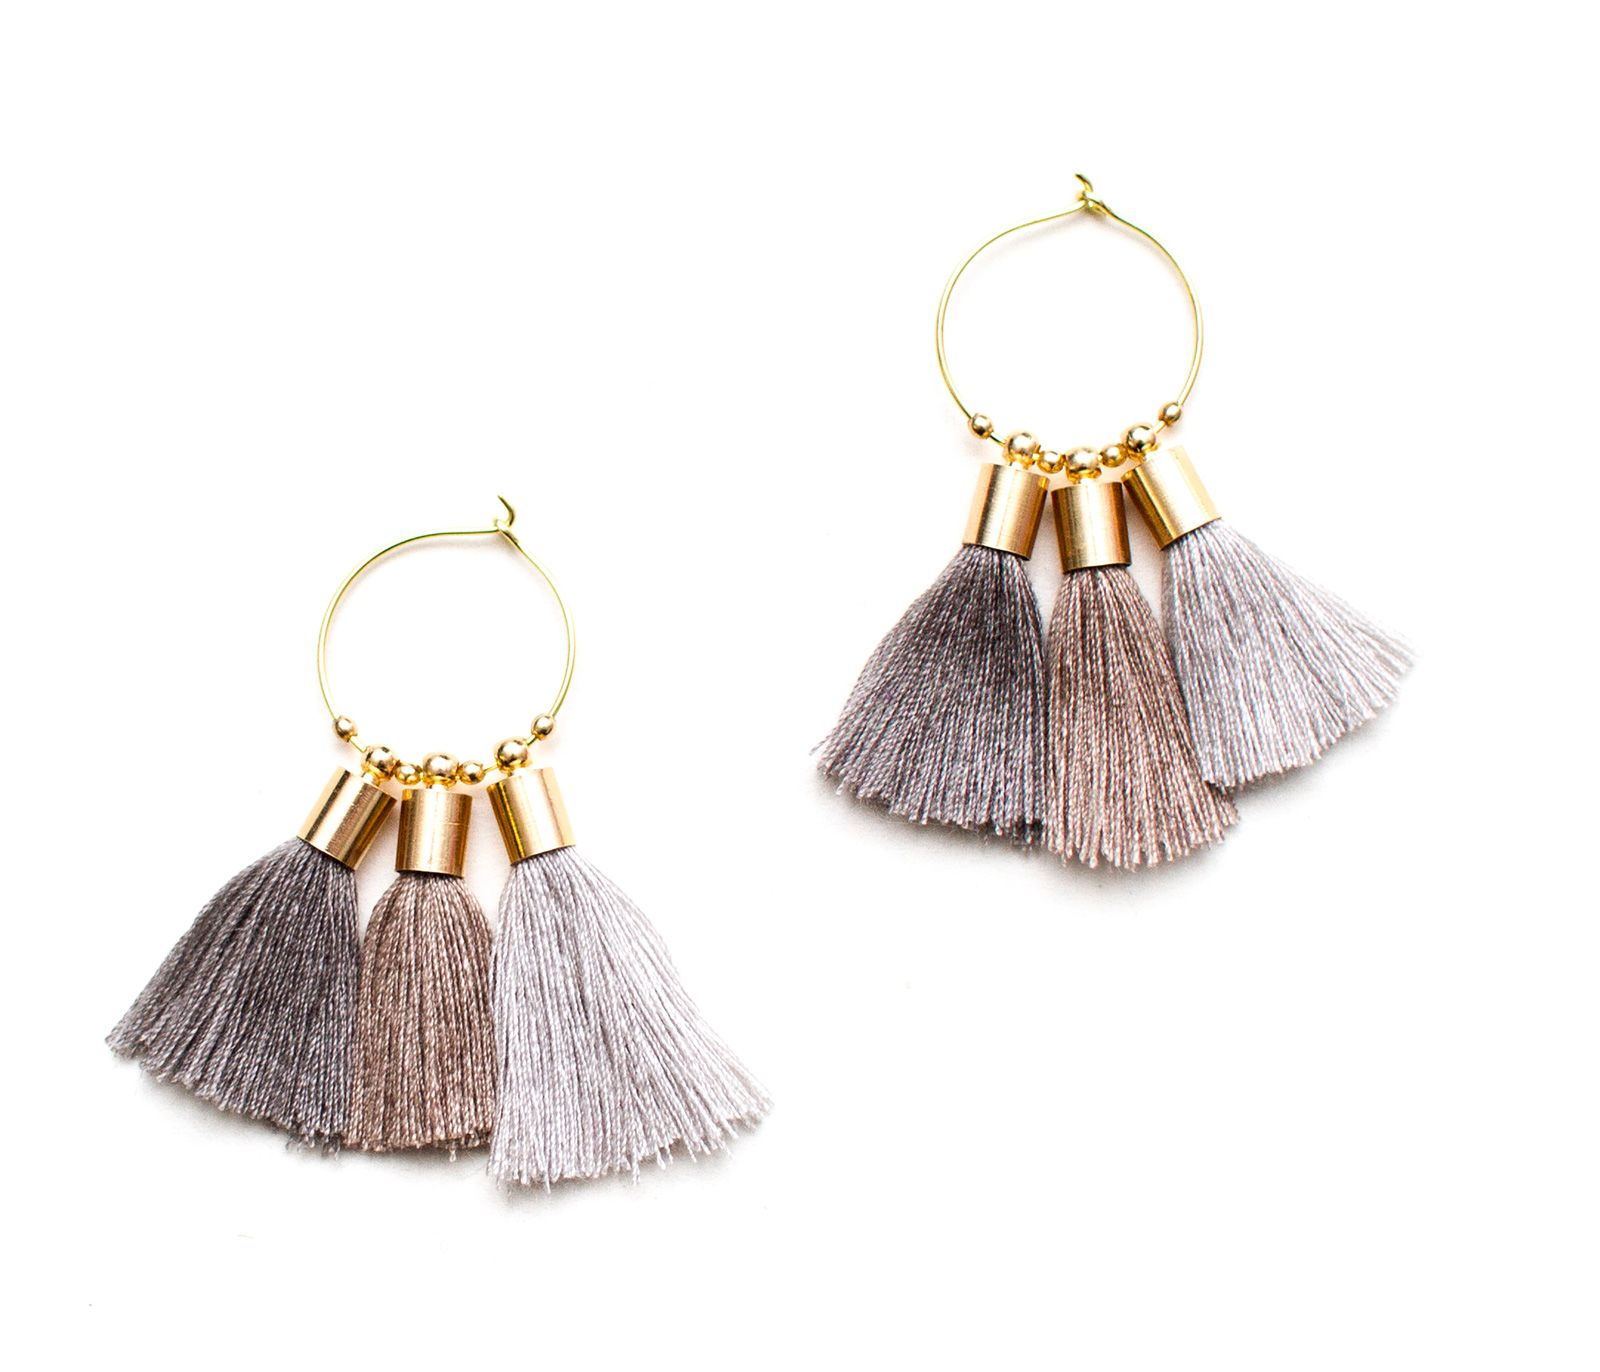 23 Items you can actually wear PAST Coachella featuring HONEYROSE & K fringe tassel earrings via People Style!